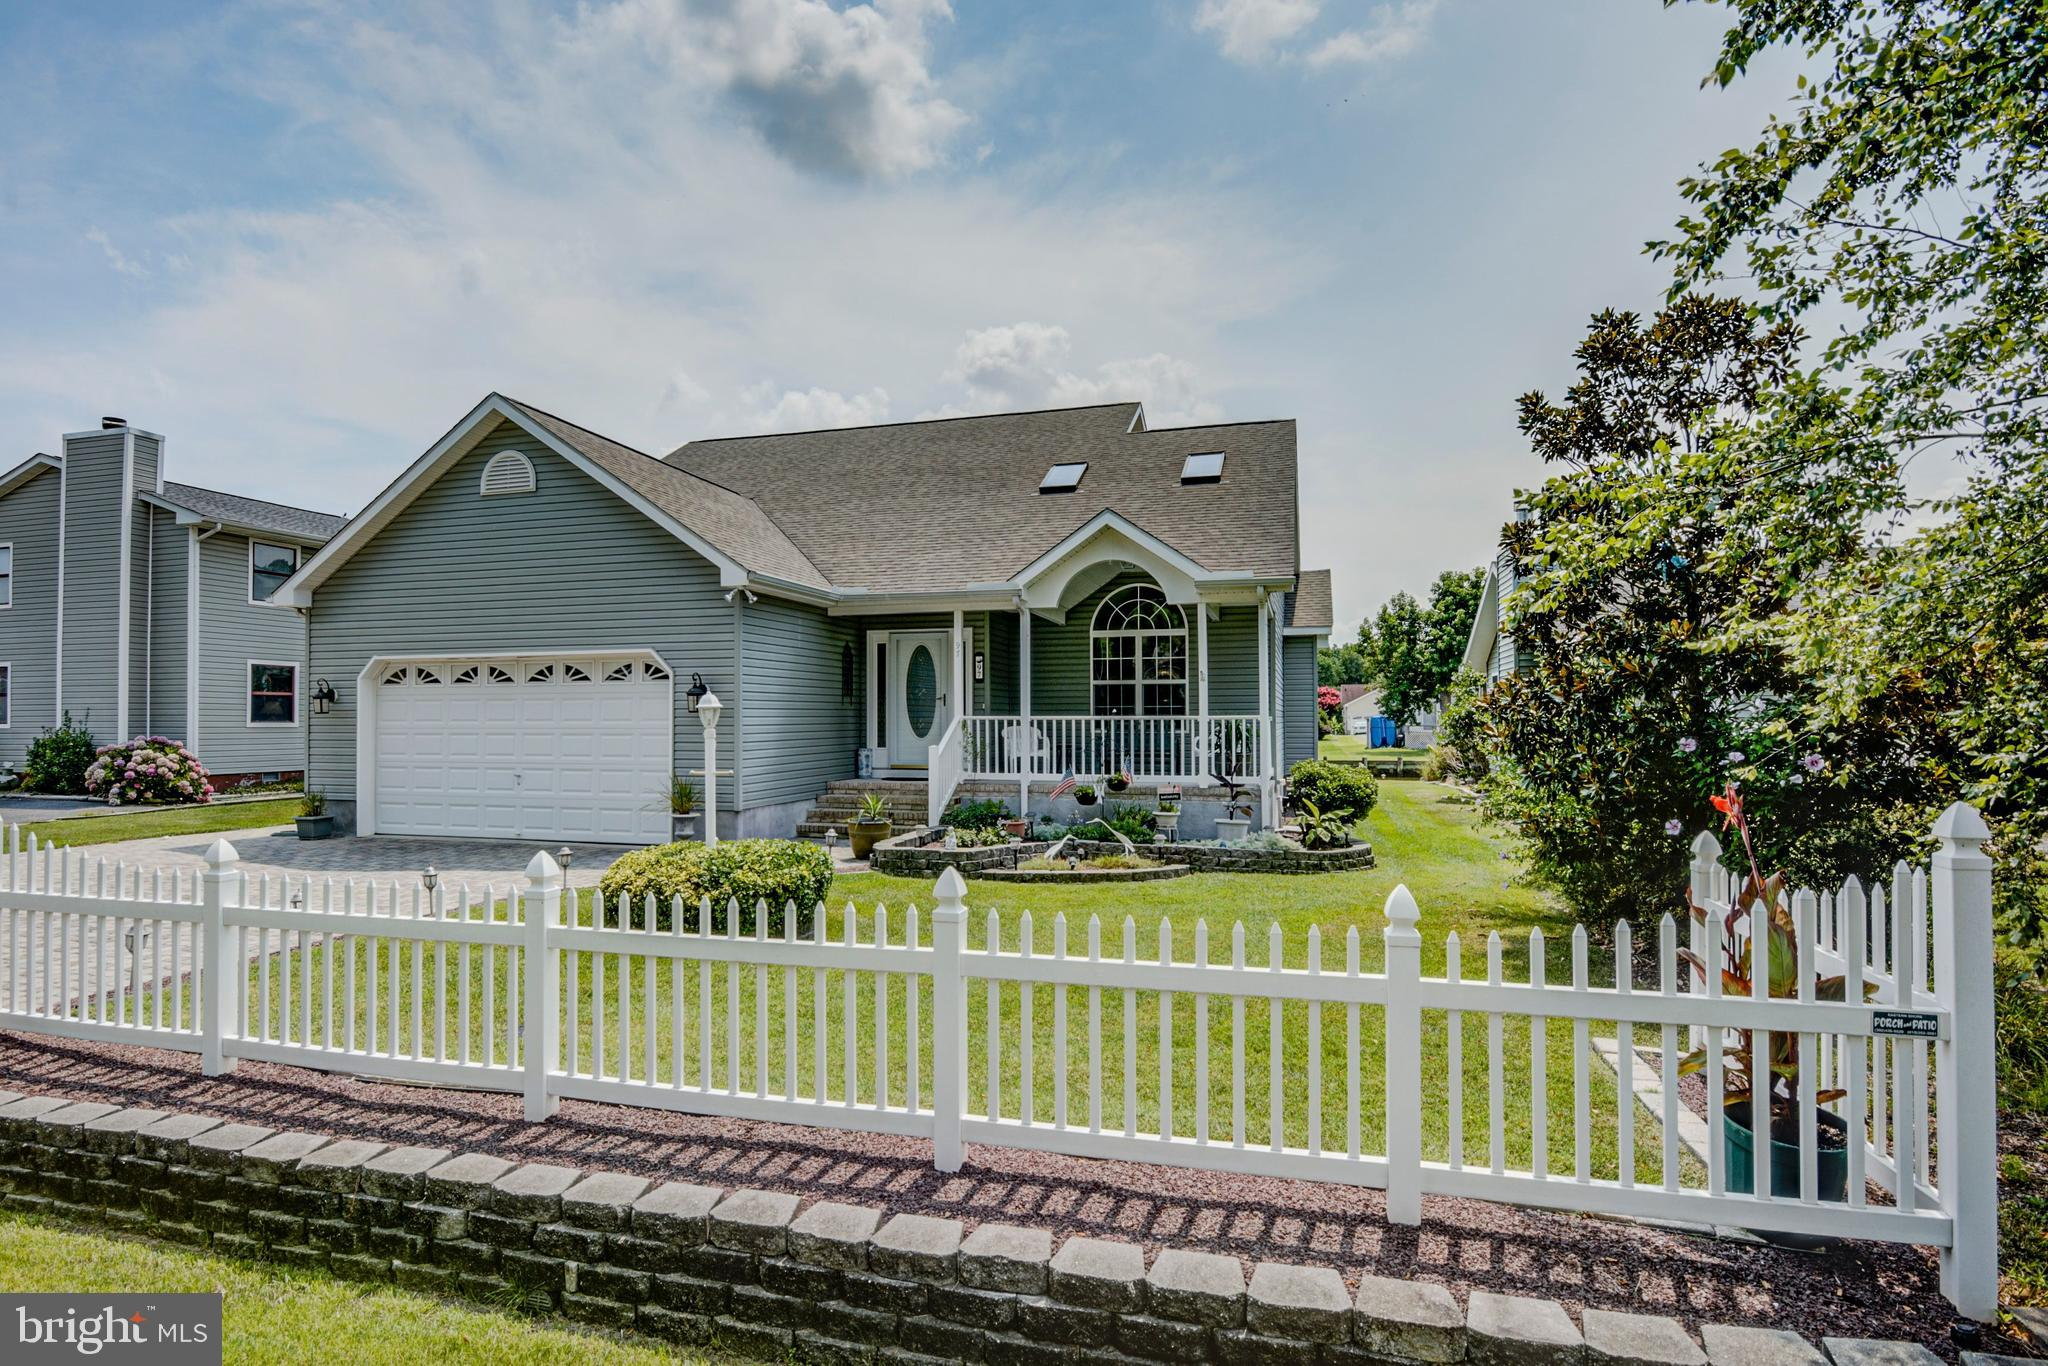 Immaculately maintained waterfront home with sunroom, three-seasons room, hardscaped patio, boat doc